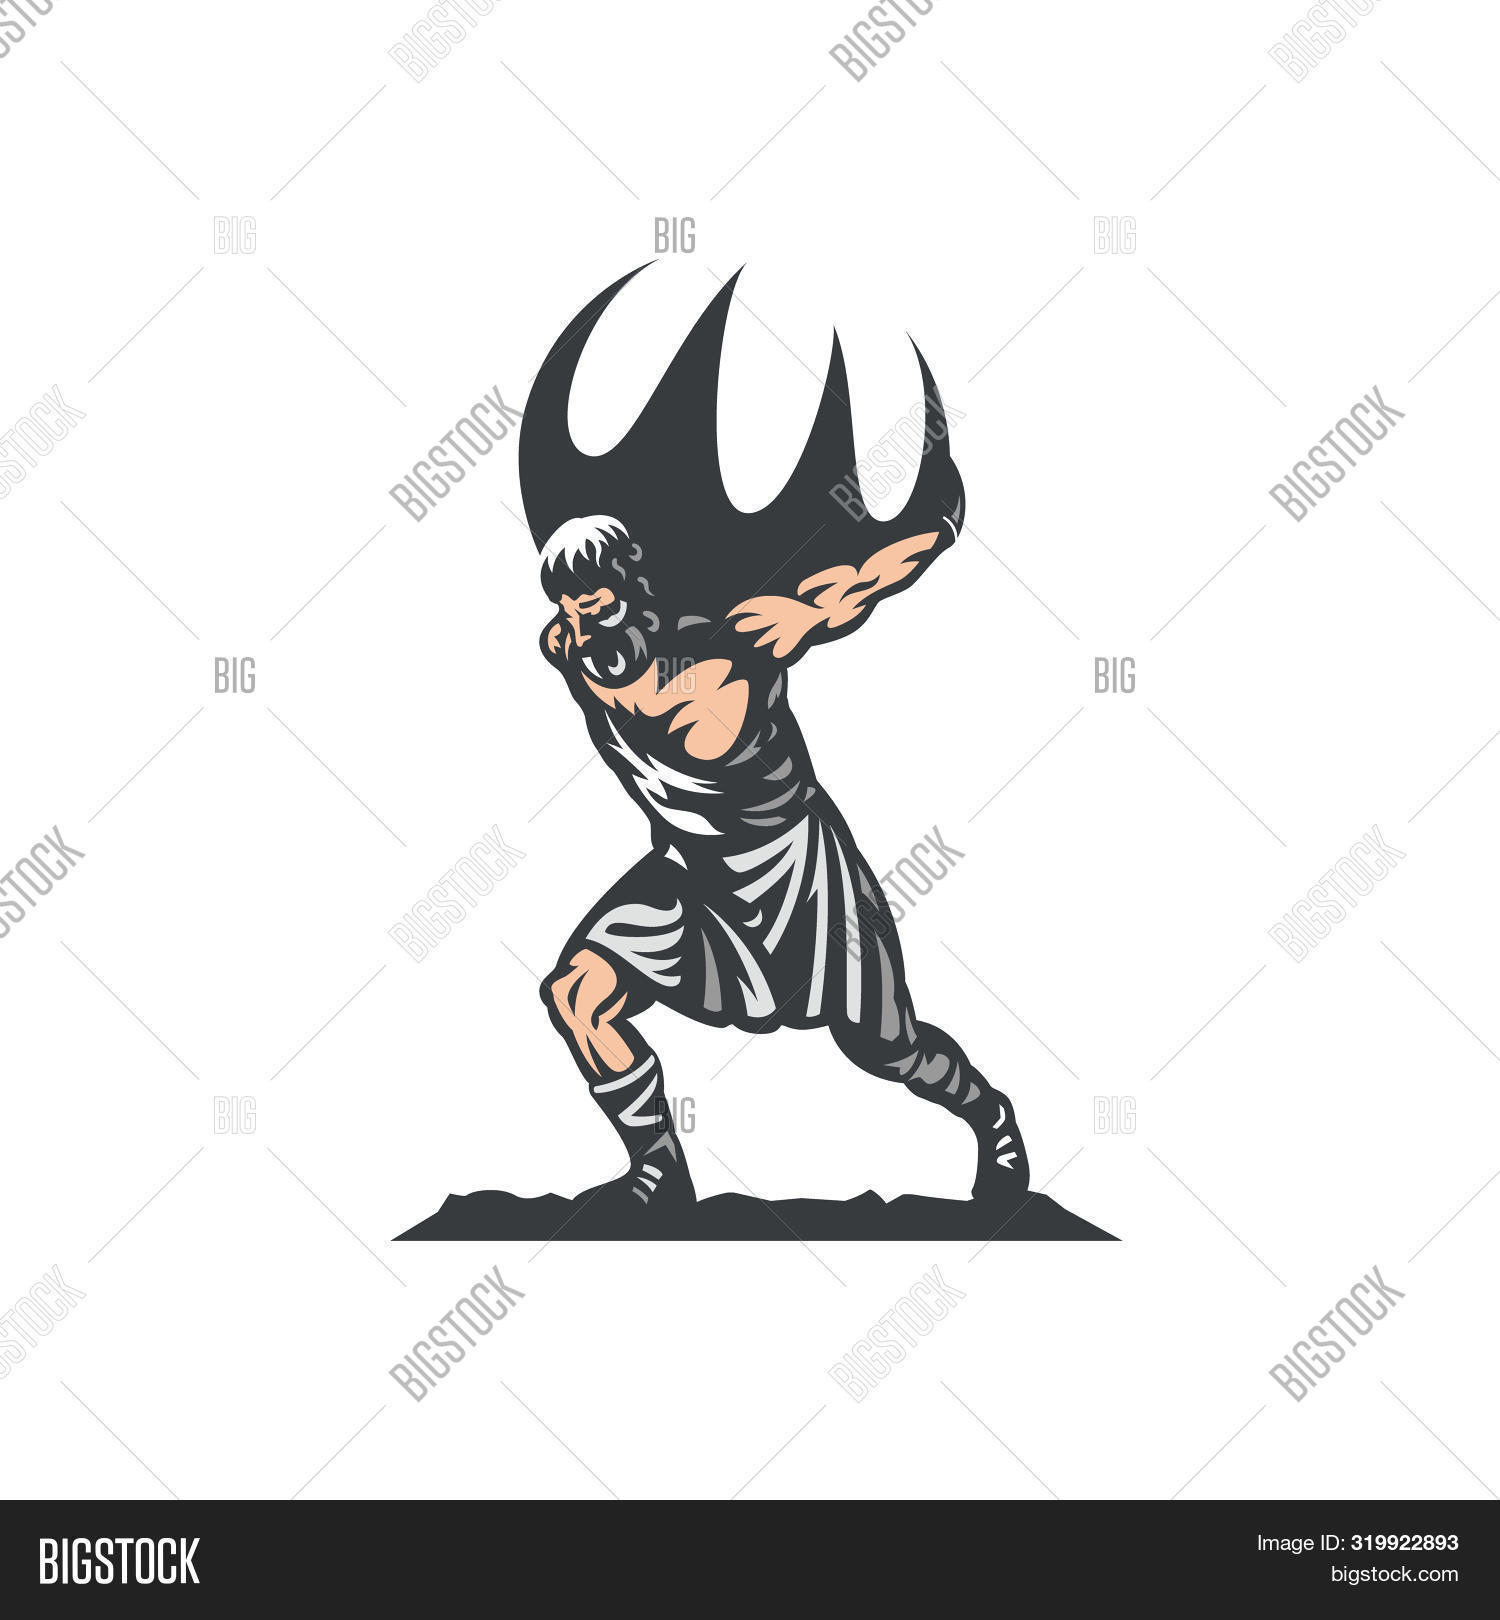 Greek,action,apparel,art,athlete,atlas,atlas-logo,body,bodybuilding,brand,business,design,detailed,earth,fitness,globe,gym,hand-drawn,holding,identity,illustration,illustrative,isolated,logo,man,media,modern,muscular,mythology,people,professional,reliability,responsibility,sun,tattoo,titan,unique,web,world